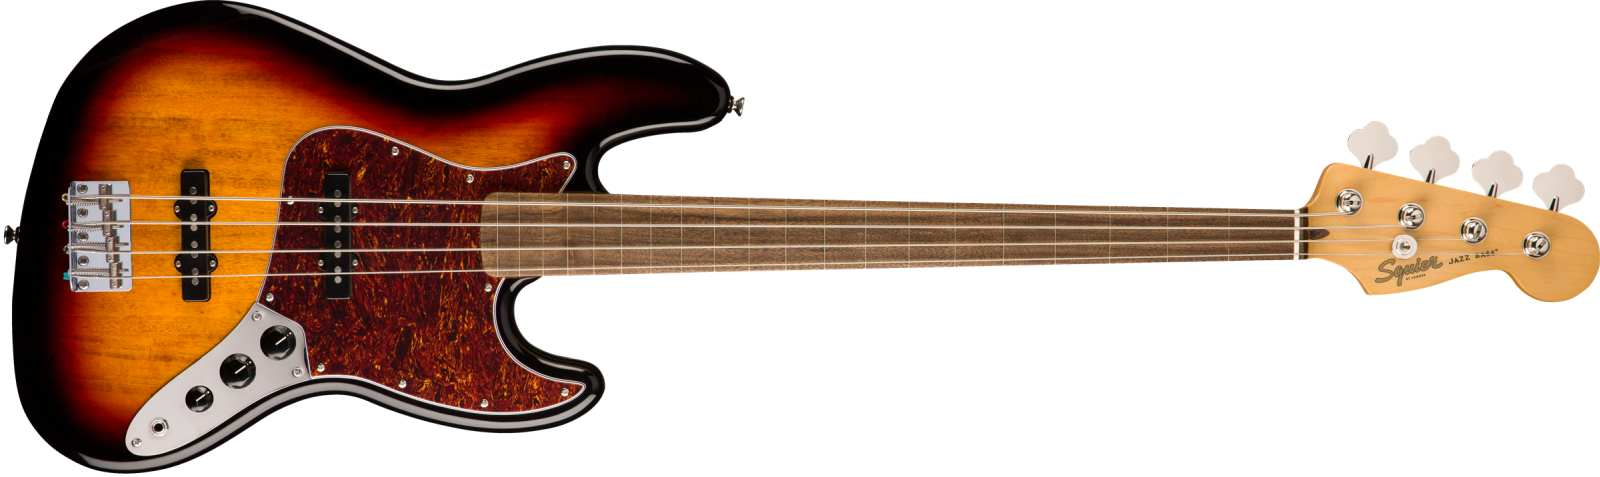 Squier Classic Vibe 60s Jazz Bass LRL 3TS Fretless